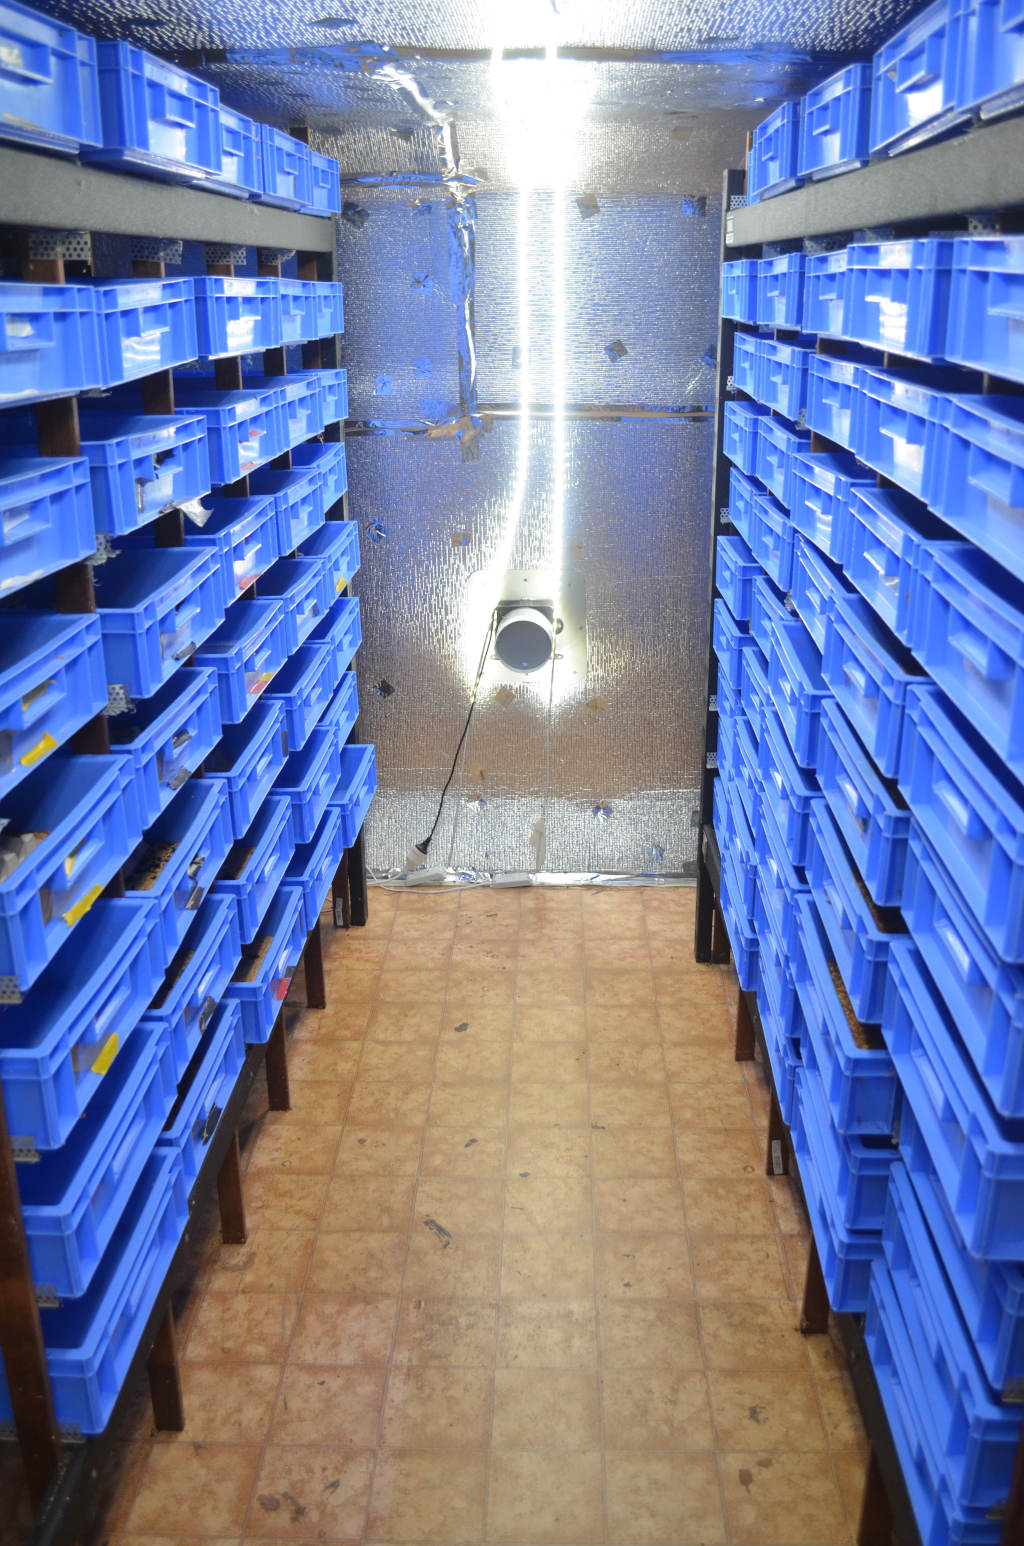 Photo of a commercial mealworm farm. A coridor in the middle with wall to wall containers on either side. Bright strip lightening on roof and ventilation fan at end wall. Walls are covered in aluminium insulation.